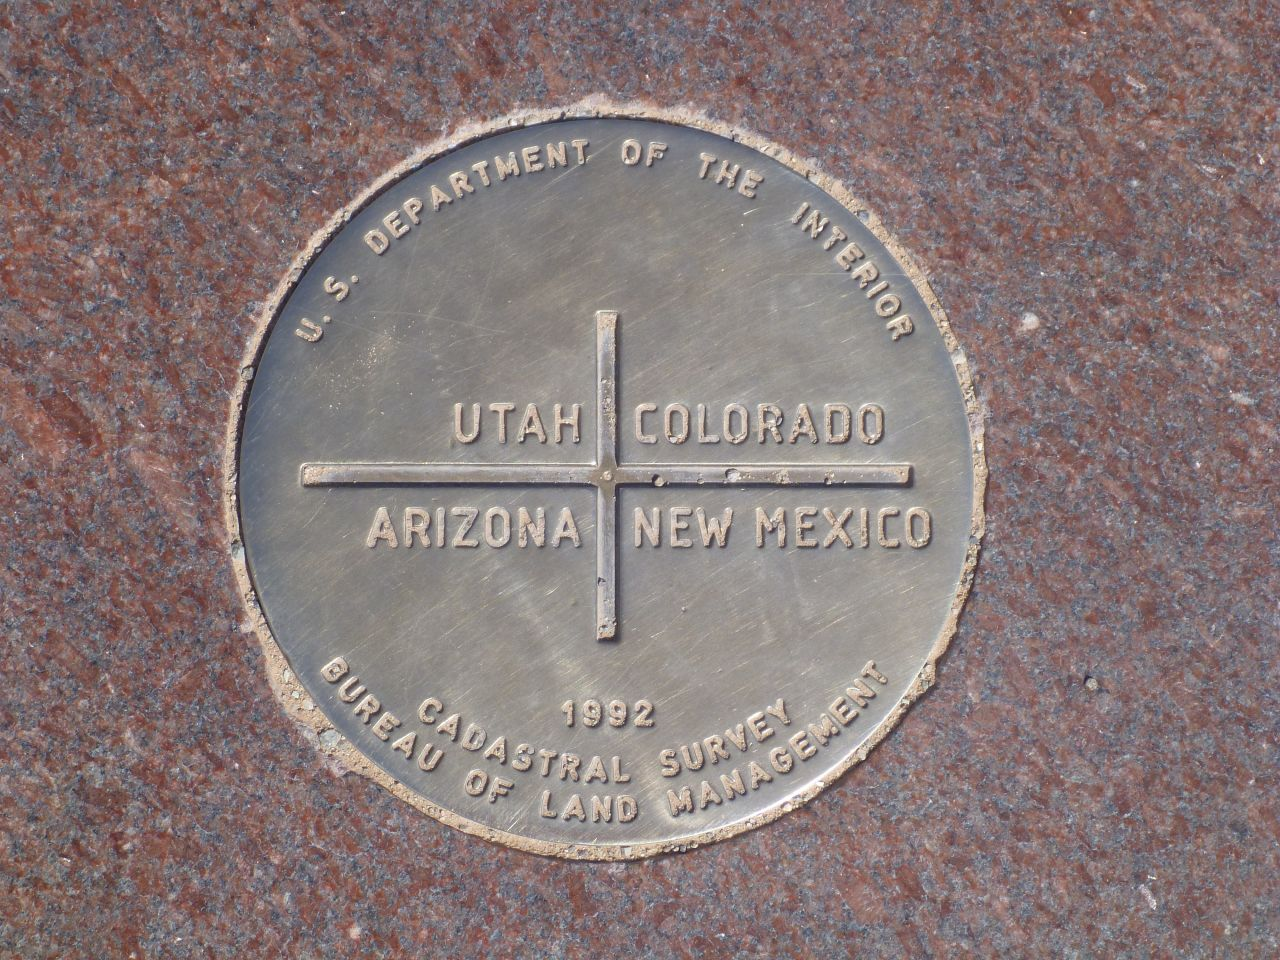 Four Corners Monument And Bluff Utah Outside Our Bubble